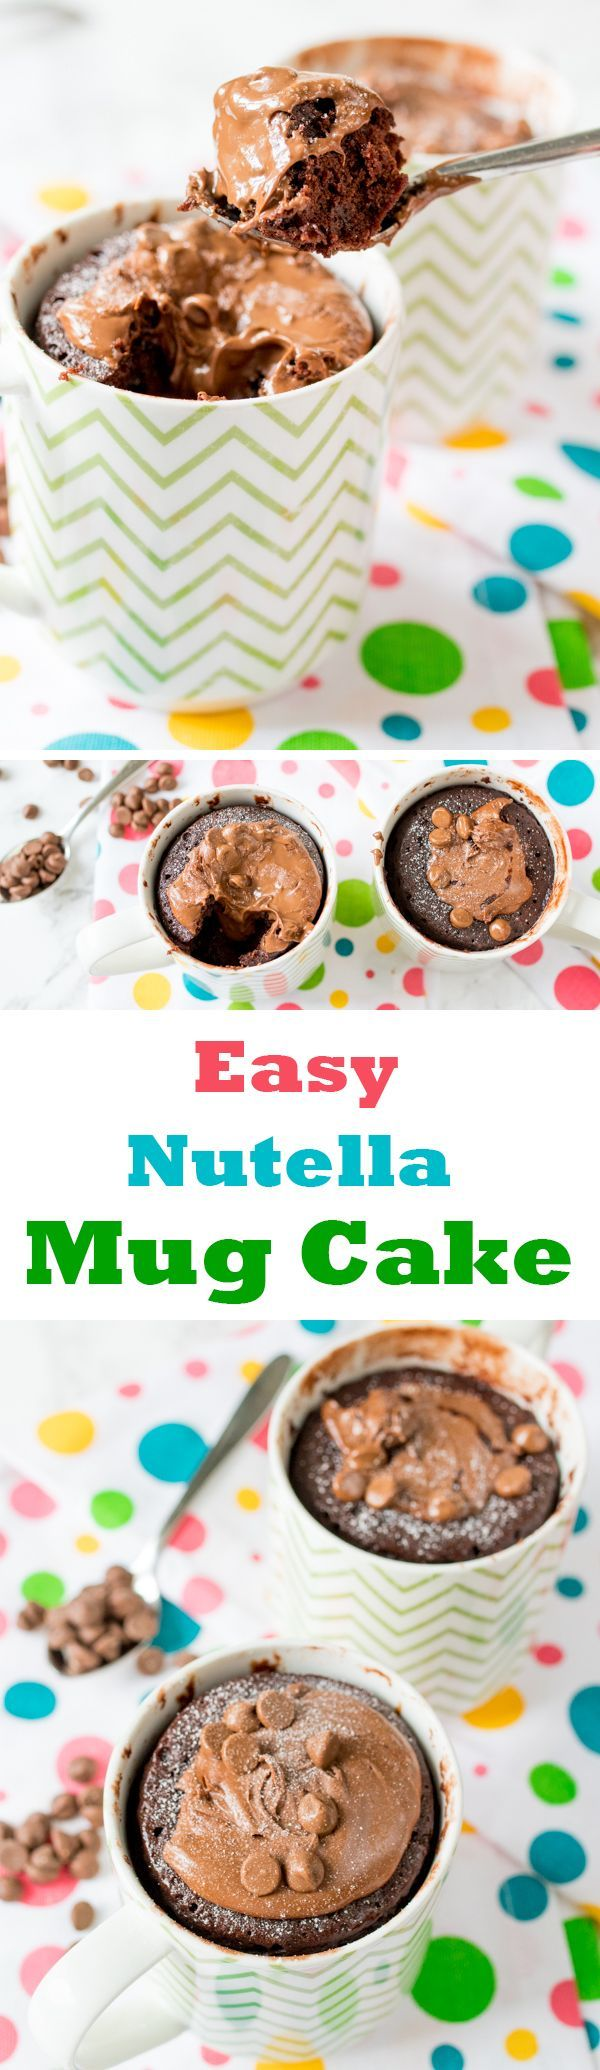 I can't wait to try this nutella mug cake recipe! It looks so easy.